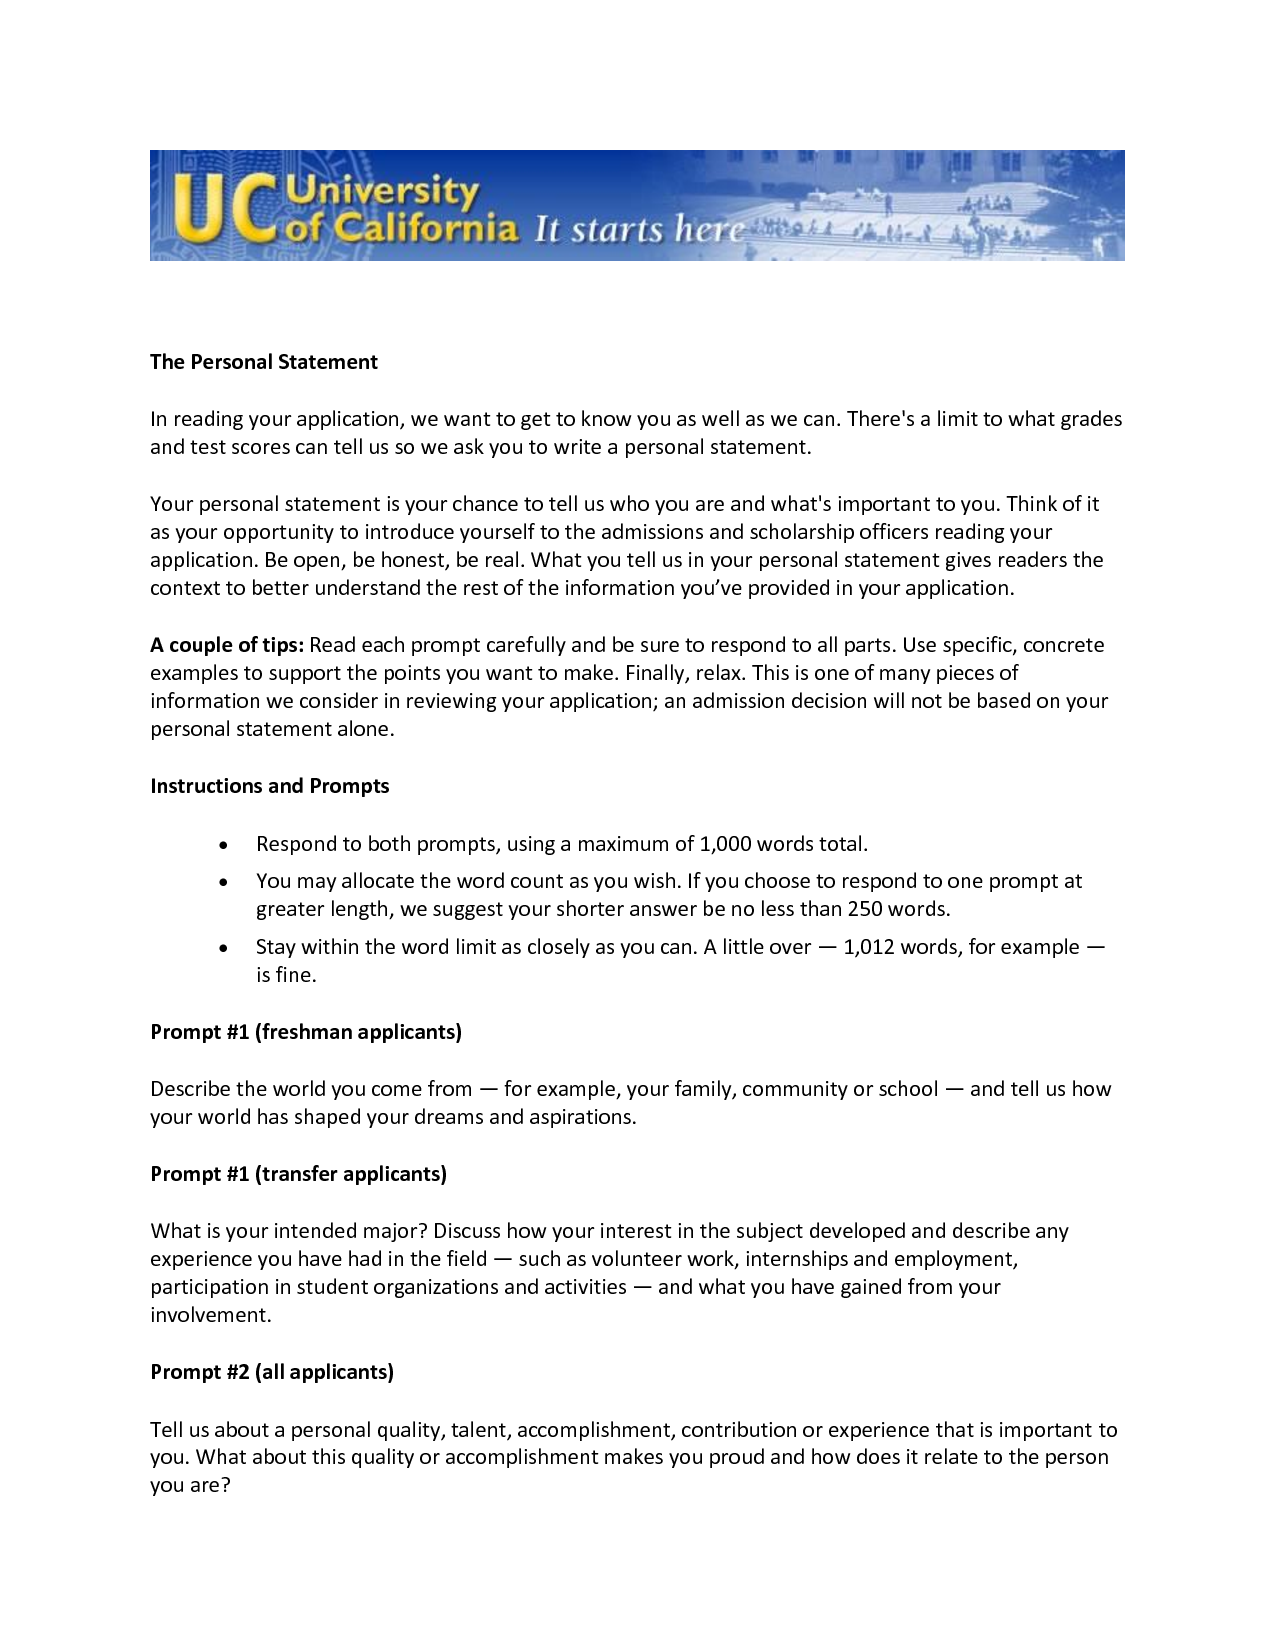 uc personal statement help  Personal statement, Essay examples, Essay